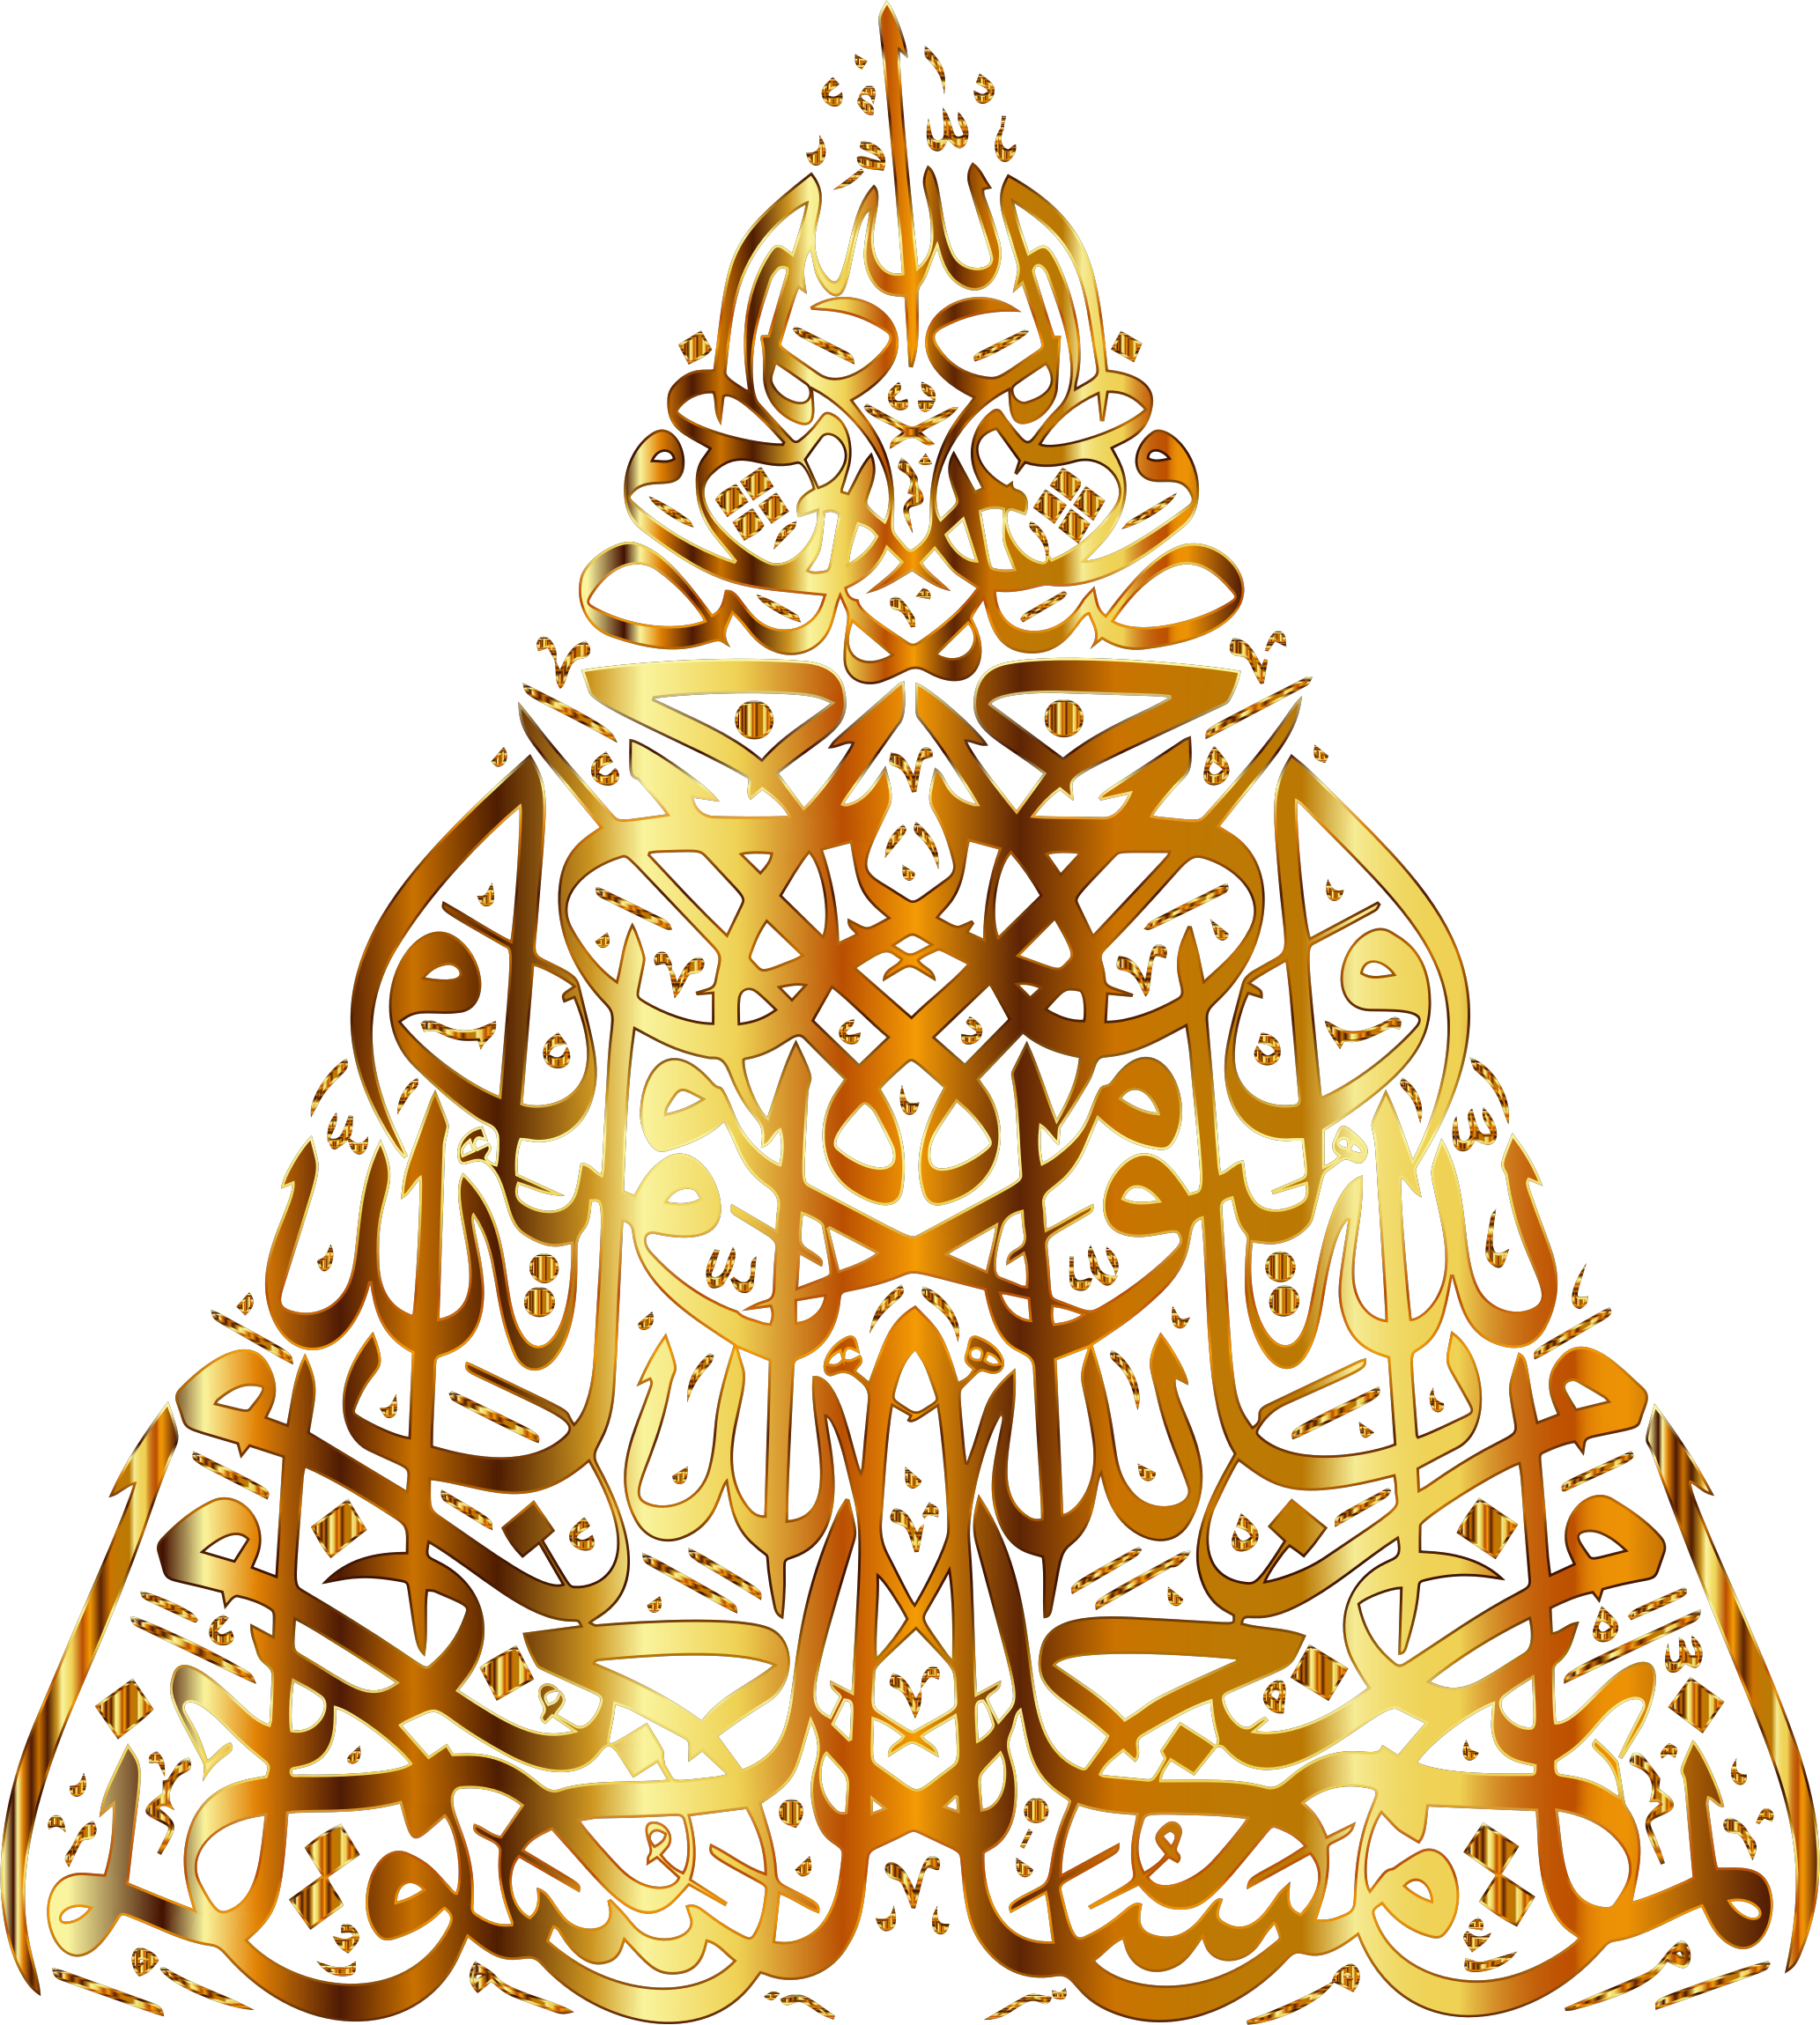 Gold Al-Tawbah 9-18 Calligraphy No Background by GDJ